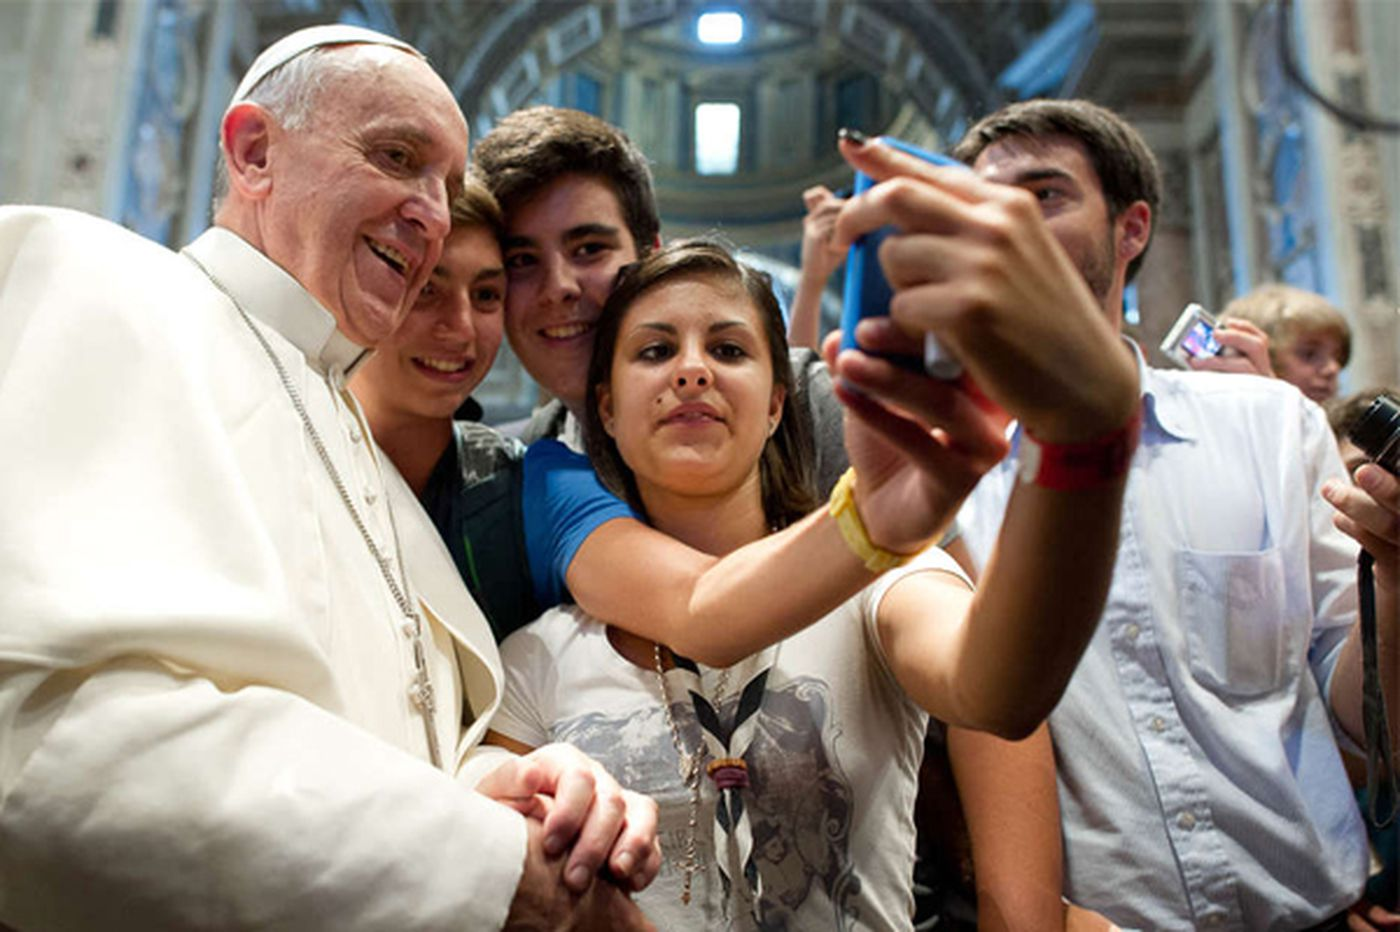 The meaning of the ubiquitous selfie